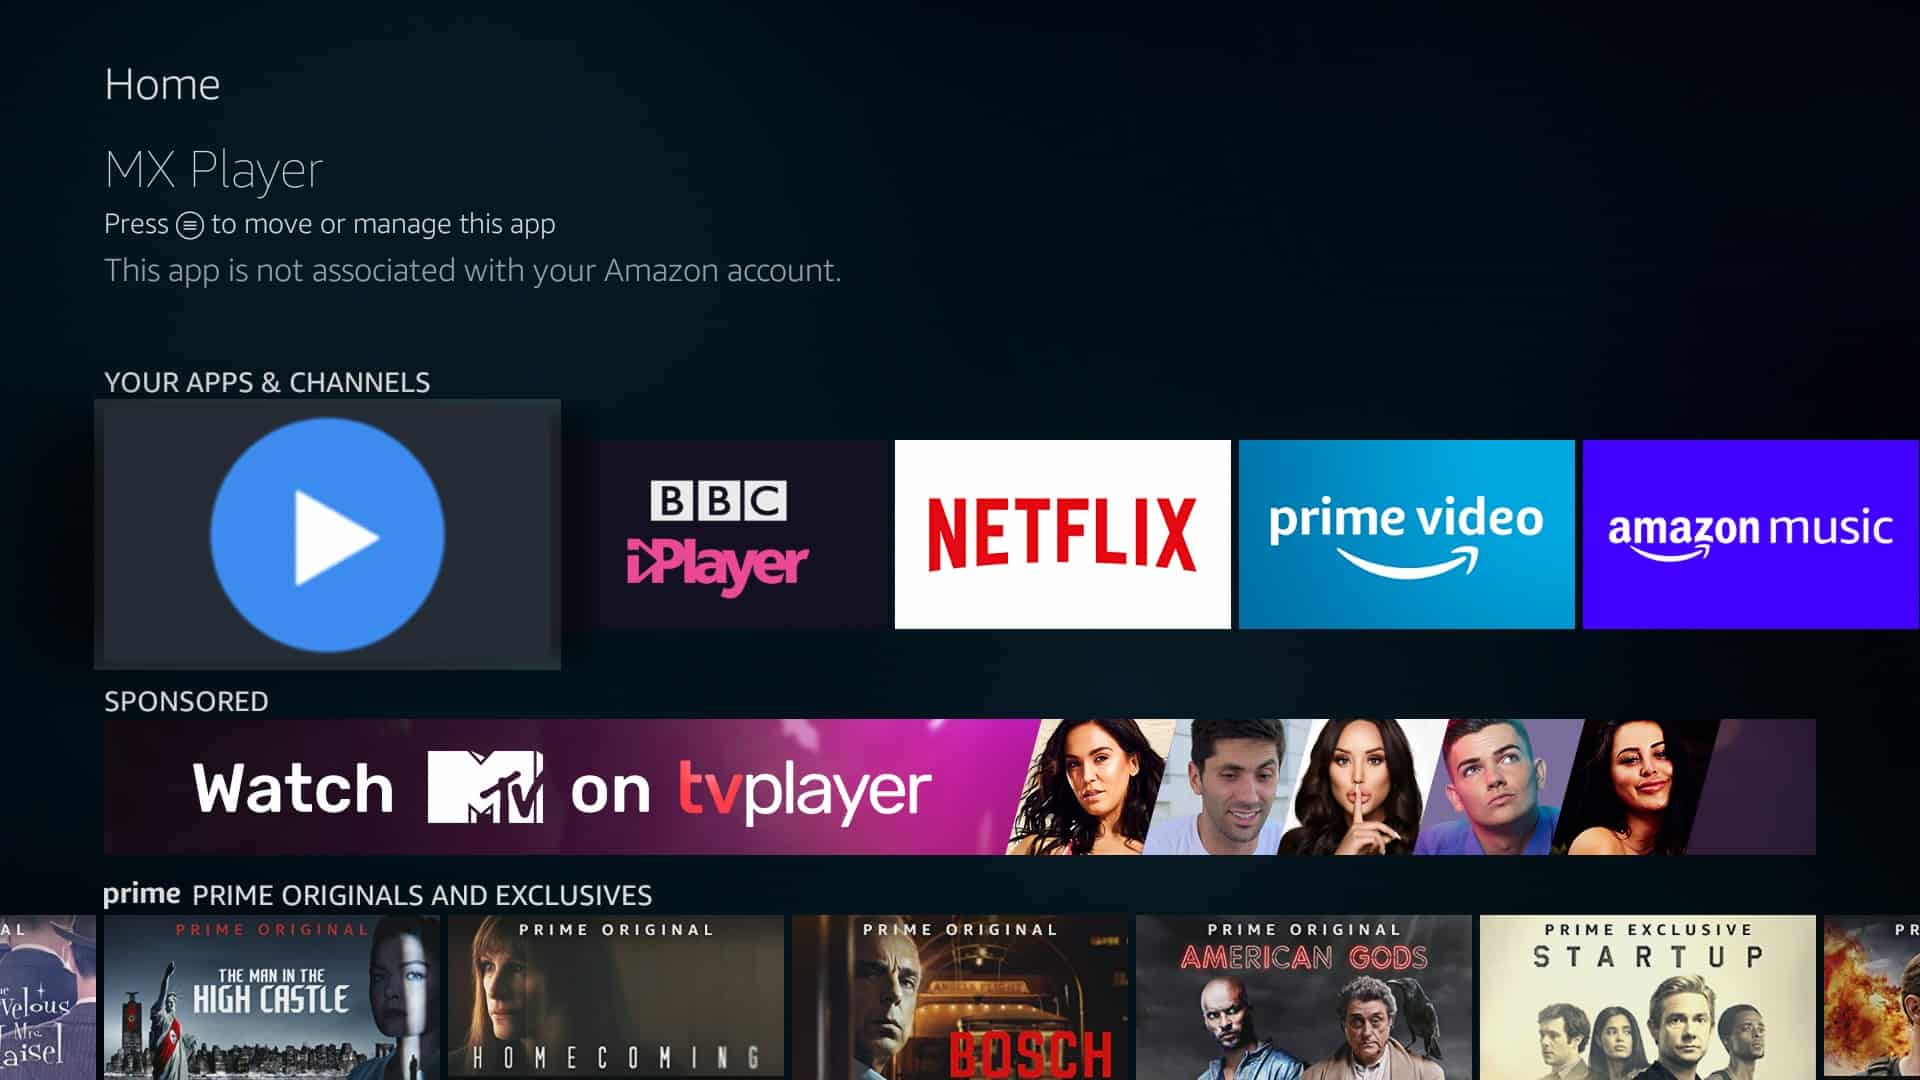 How to install MX Player on Amazon Firestick or Fire TV